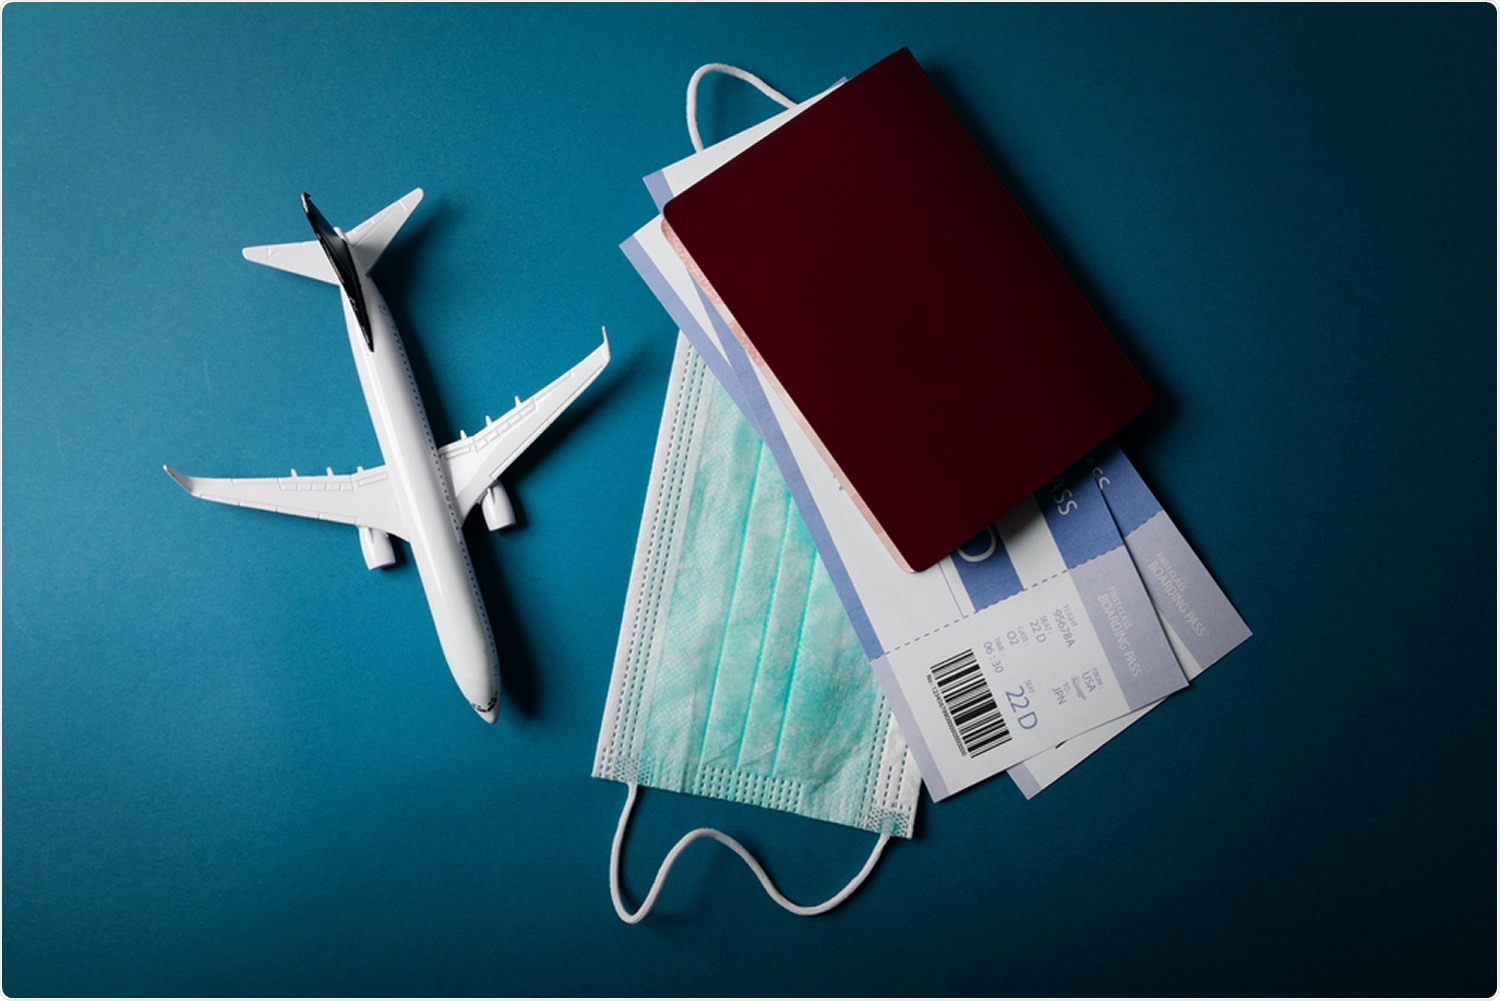 Review: Transmission of SARS-CoV-2 associated with aircraft travel: a systematic review. Image Credit: Onstik / Shutterstock